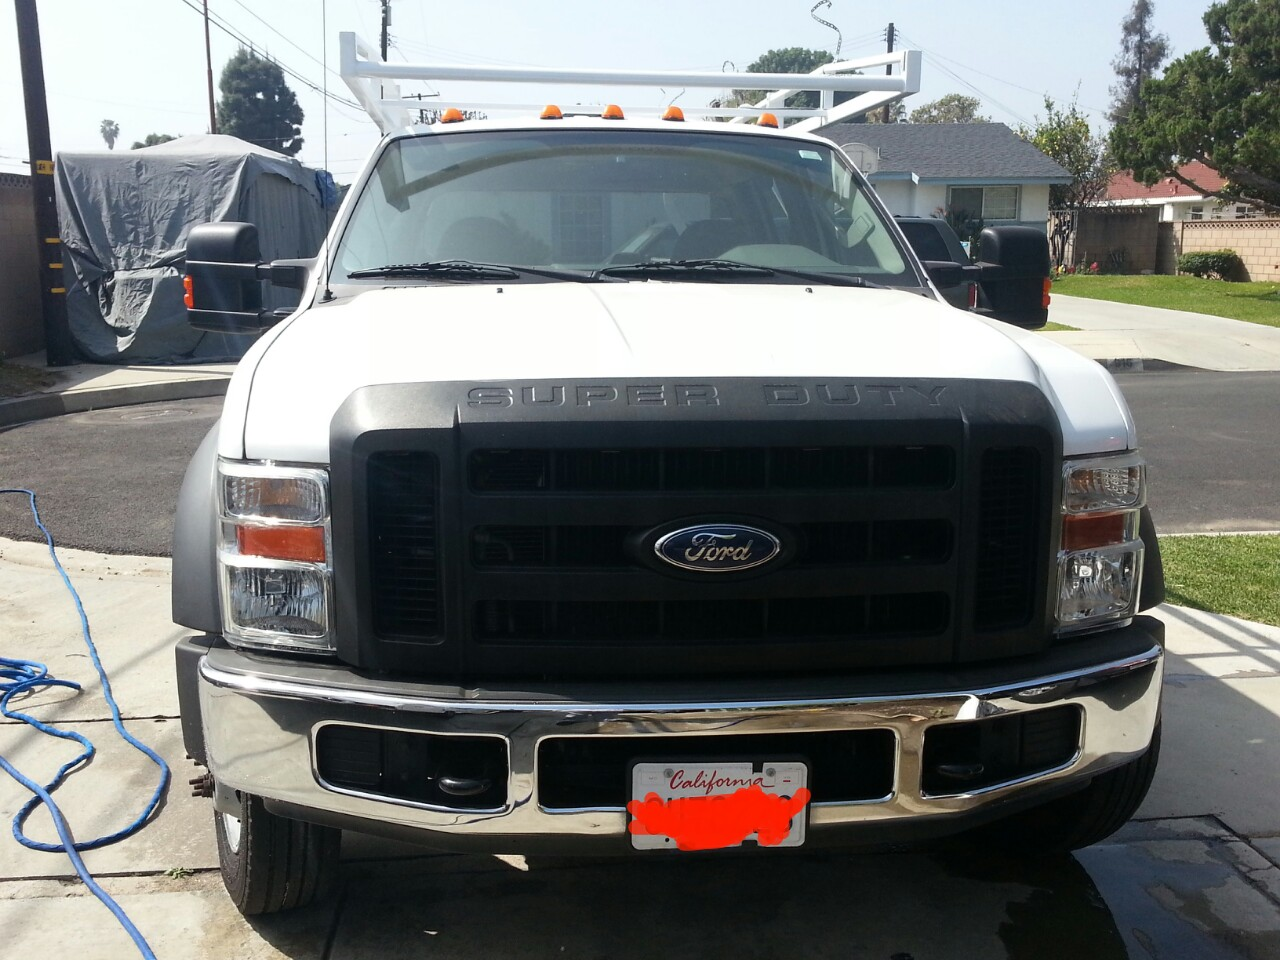 2008 ford f 450 super duty pictures cargurus. Black Bedroom Furniture Sets. Home Design Ideas